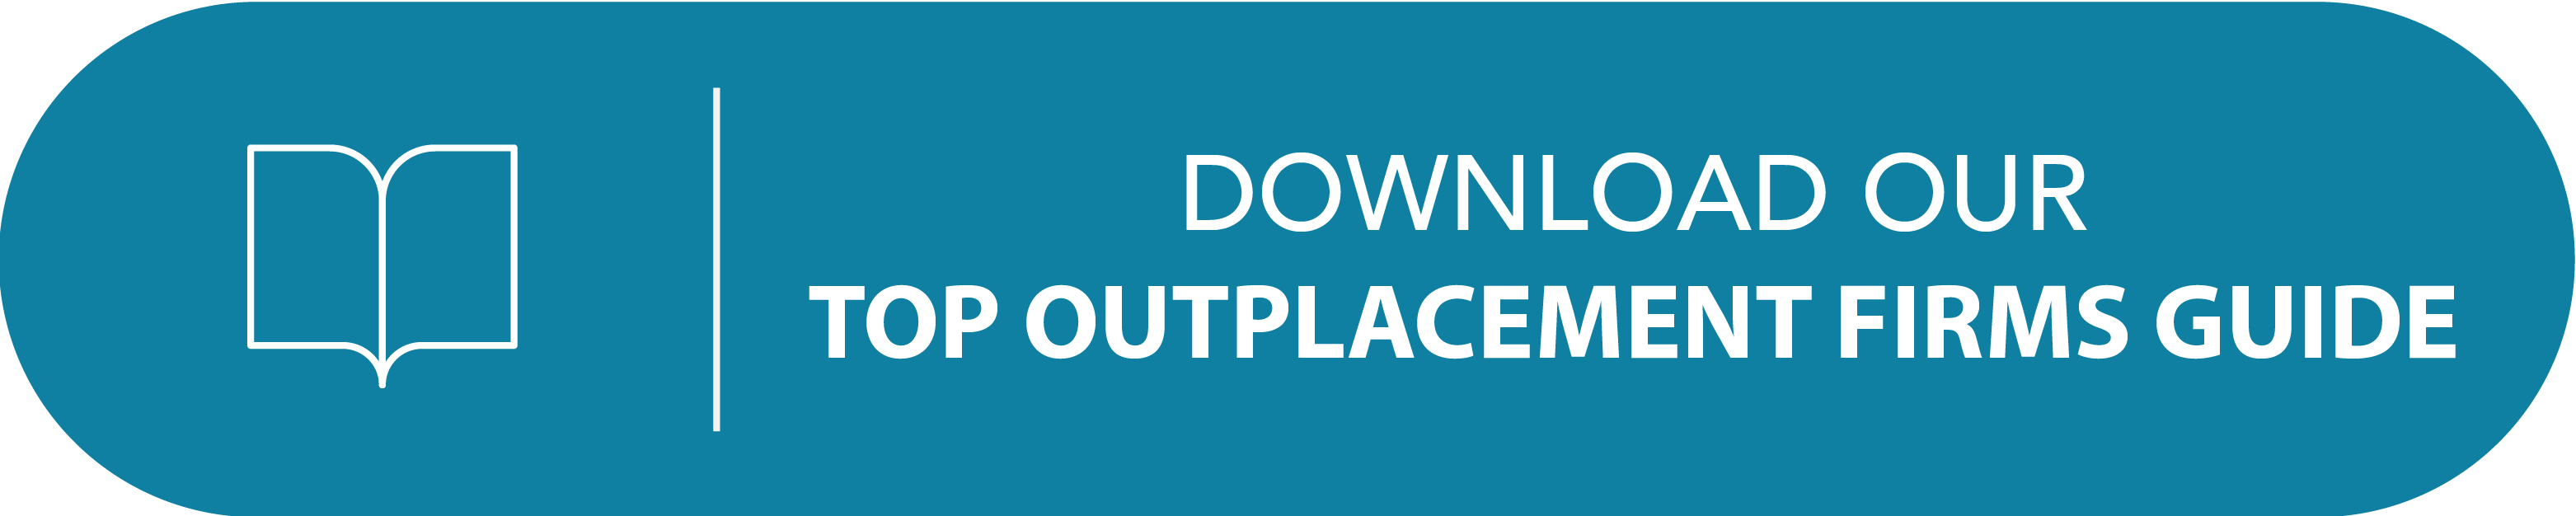 Download Our Top Outplacment Firms Guide